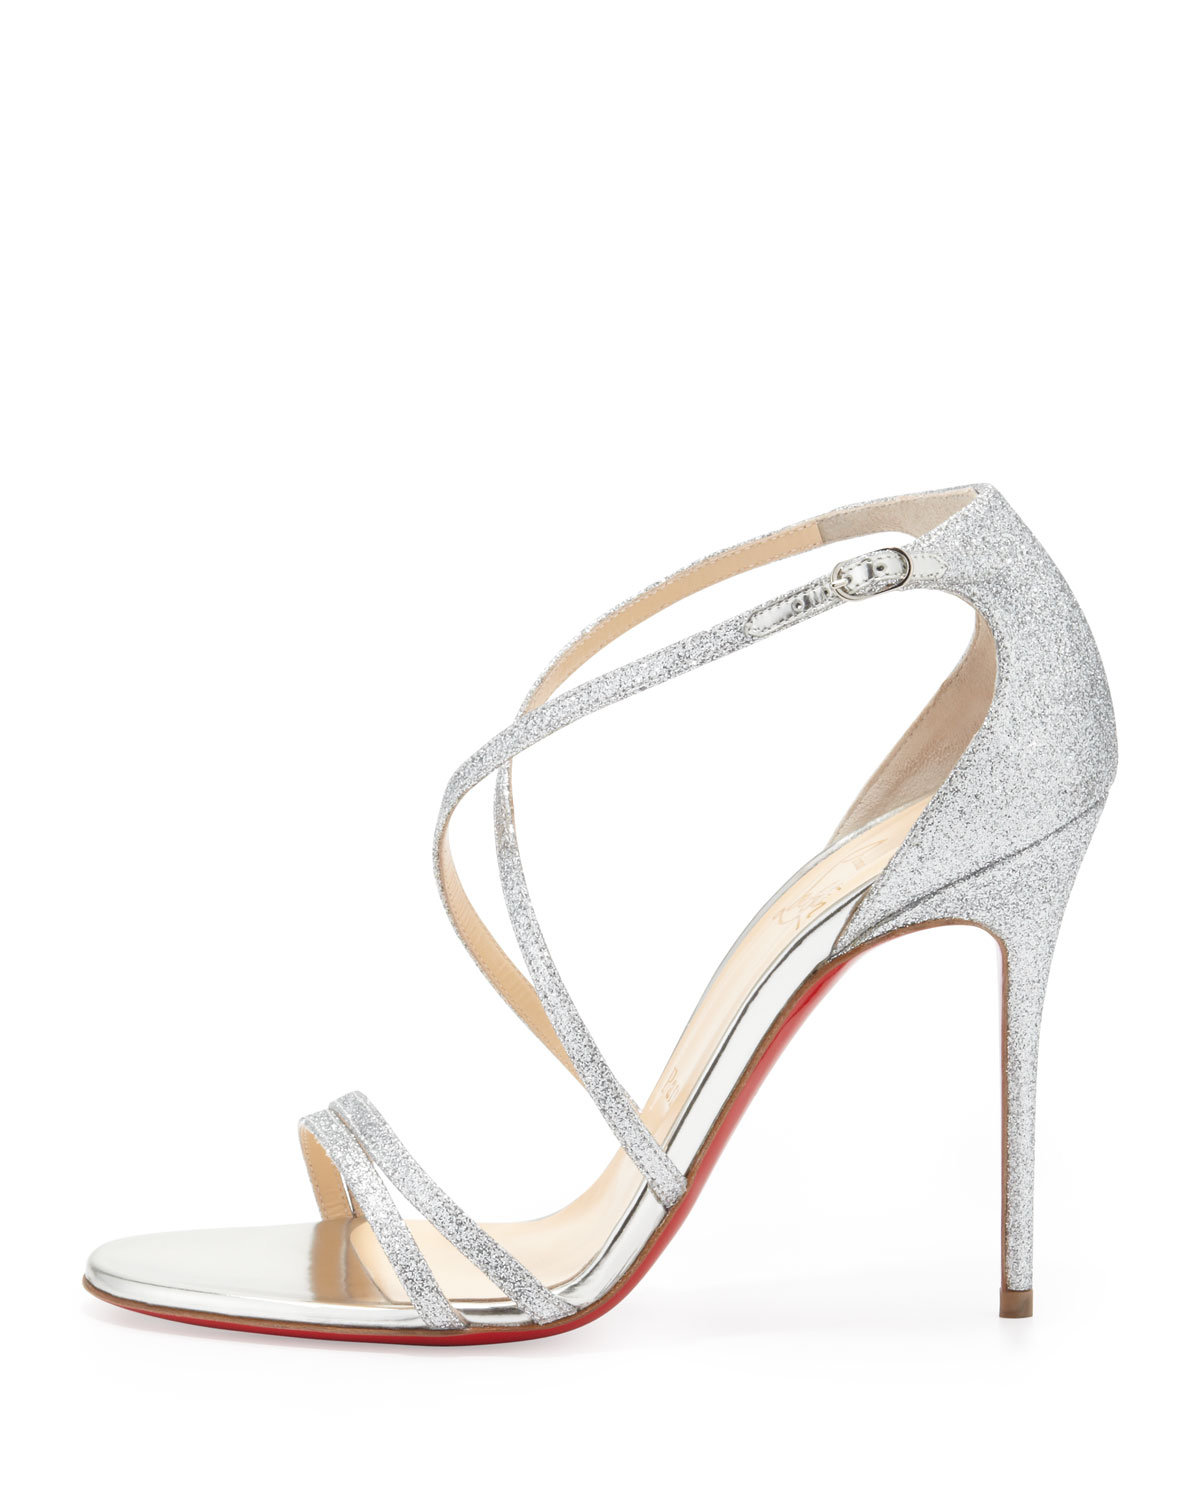 louboutin sandals silver